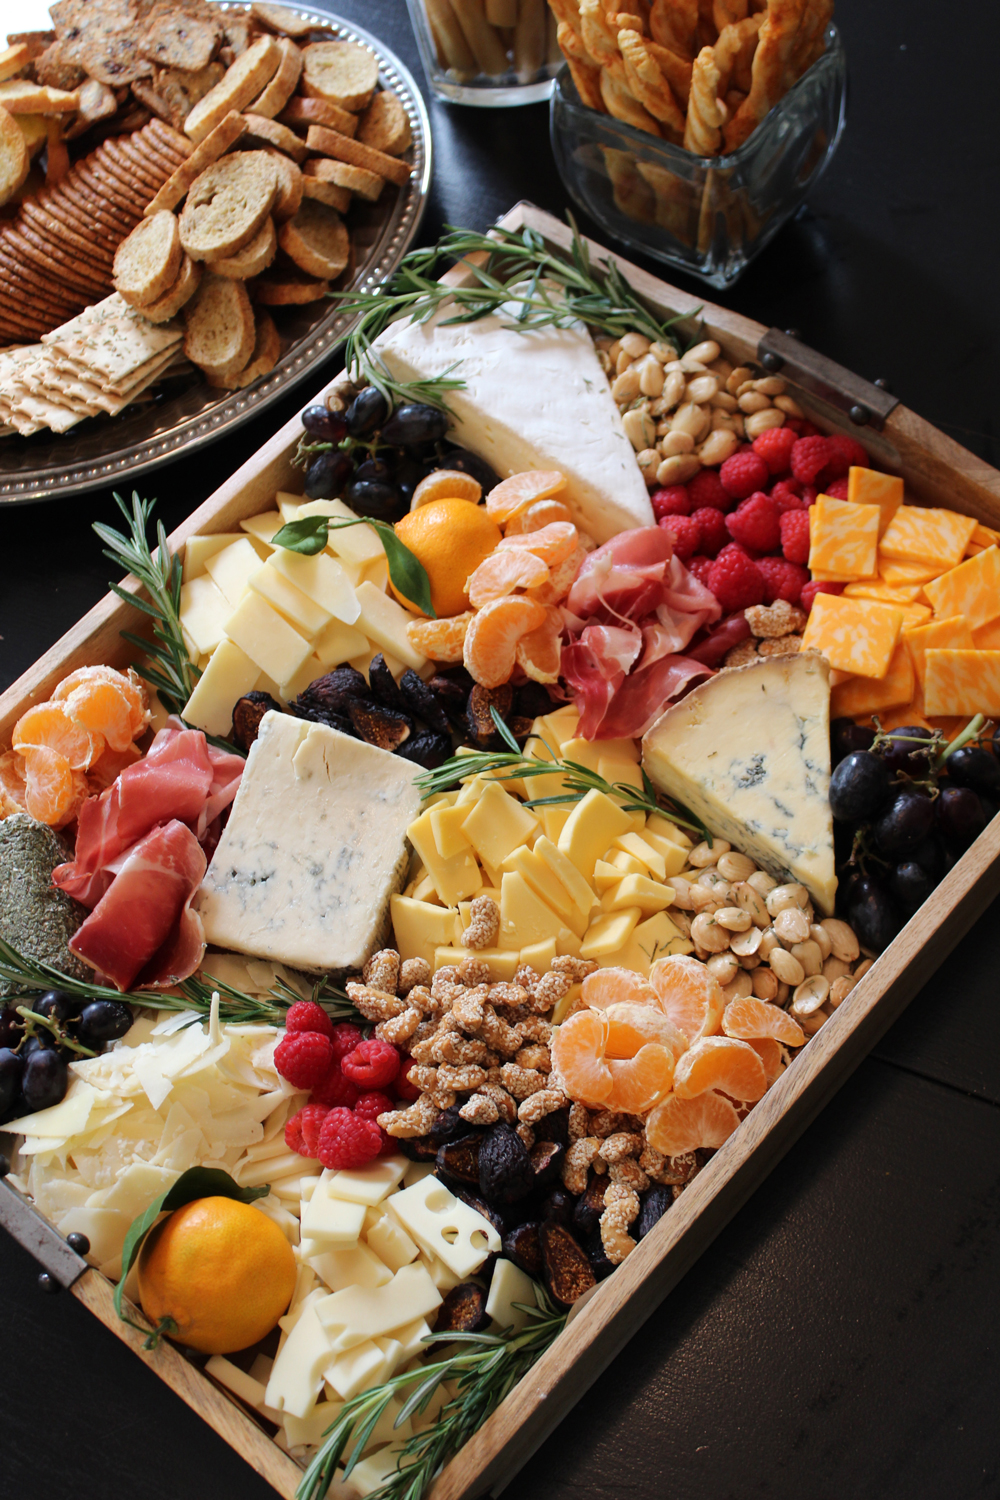 Rustic Cheese, Fruit, Nut and Meat Tray